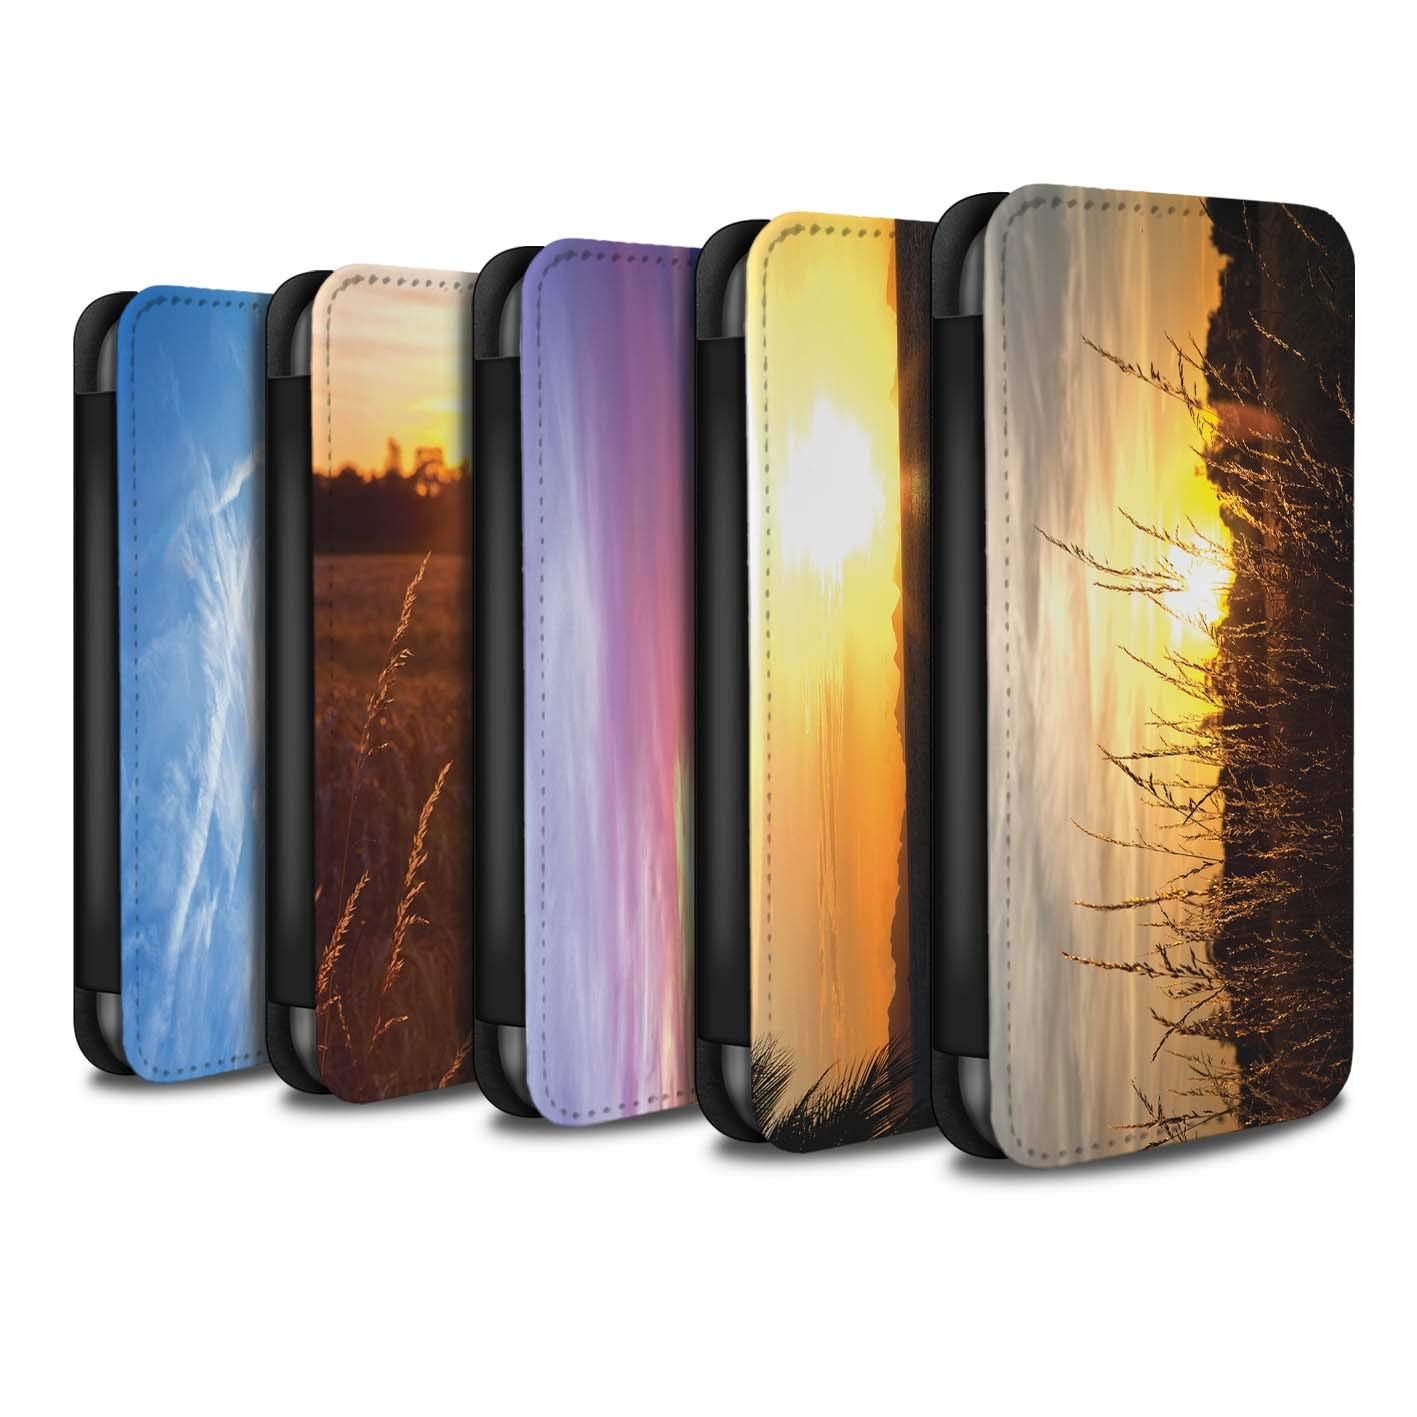 eSwish PU Leather Wallet Flip Case/Cover for Huawei P Smart/Multipack (20 Pack) Design/Sunset Scenery Collection